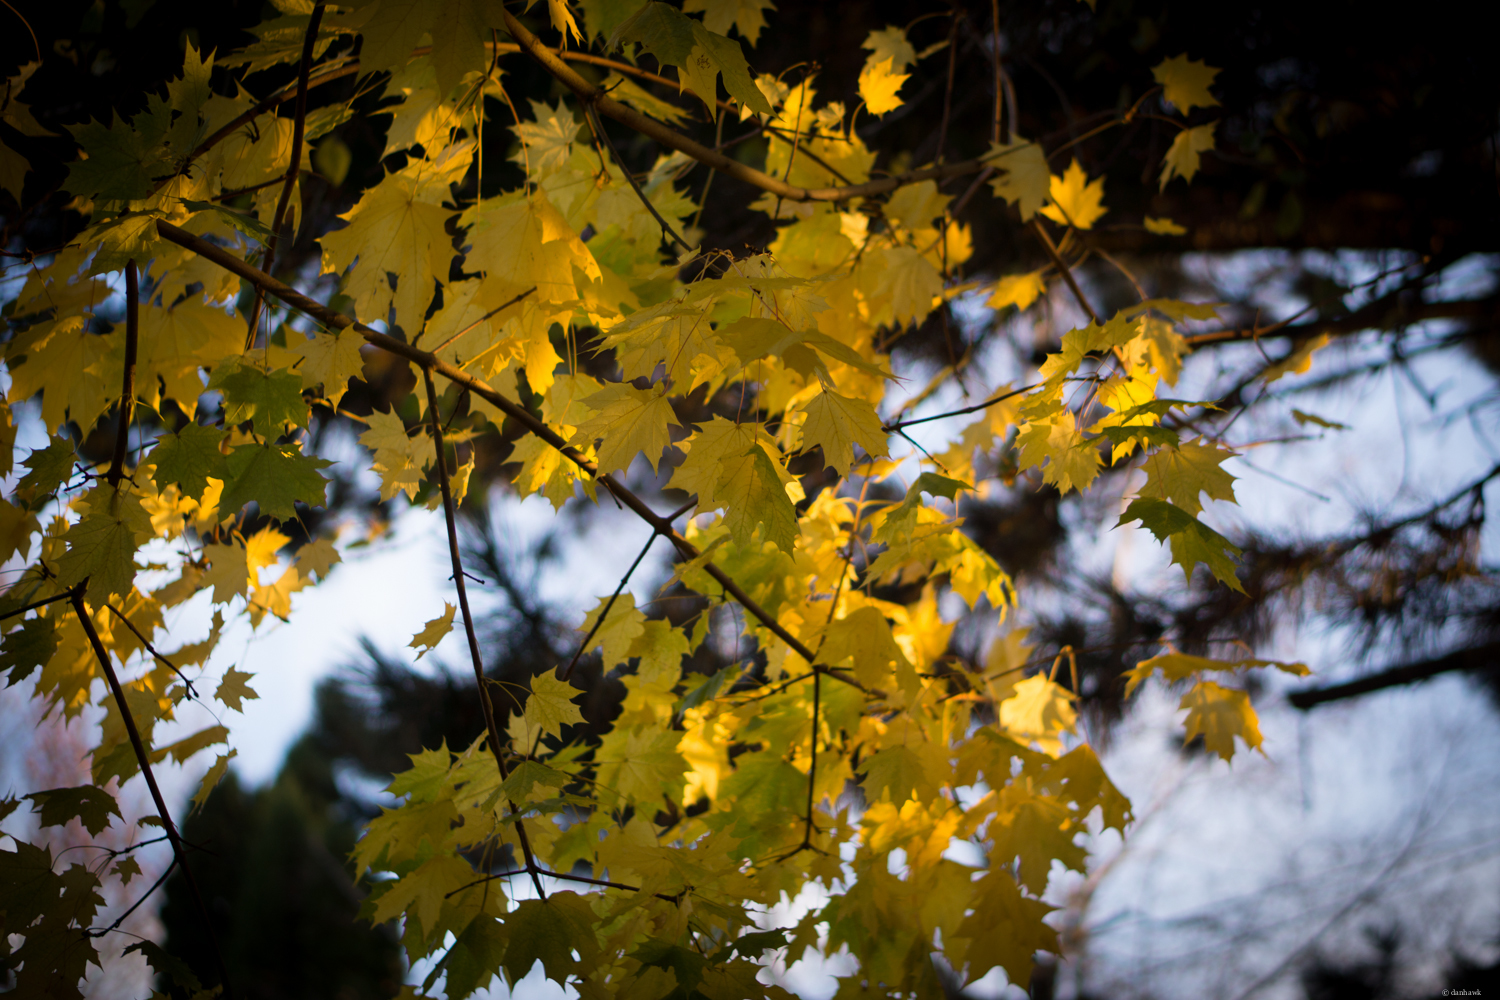 Backyard Leaf Light | 50mm, f/1.8, ISO 100, 1/250